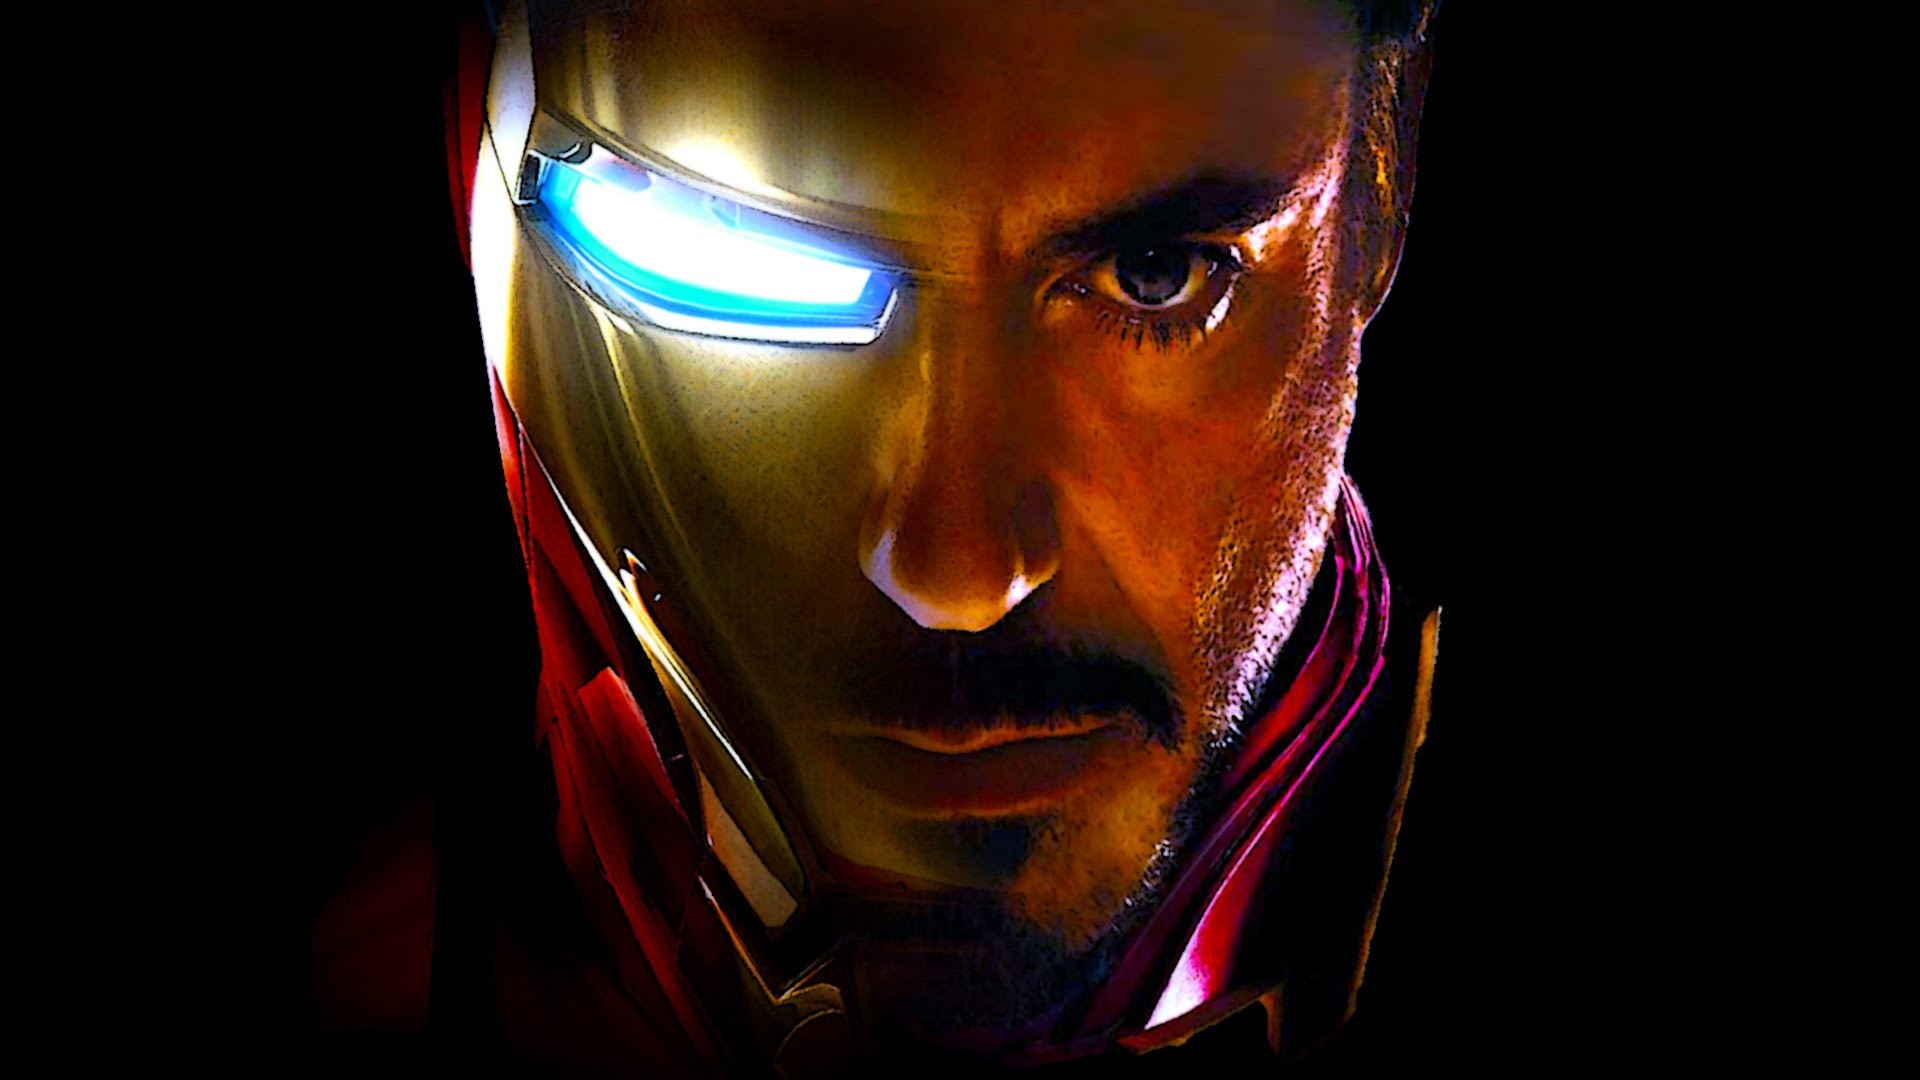 Robert Downey Jr Widescreen Wallpapers Download 1920x1080 Iron Man 2 3